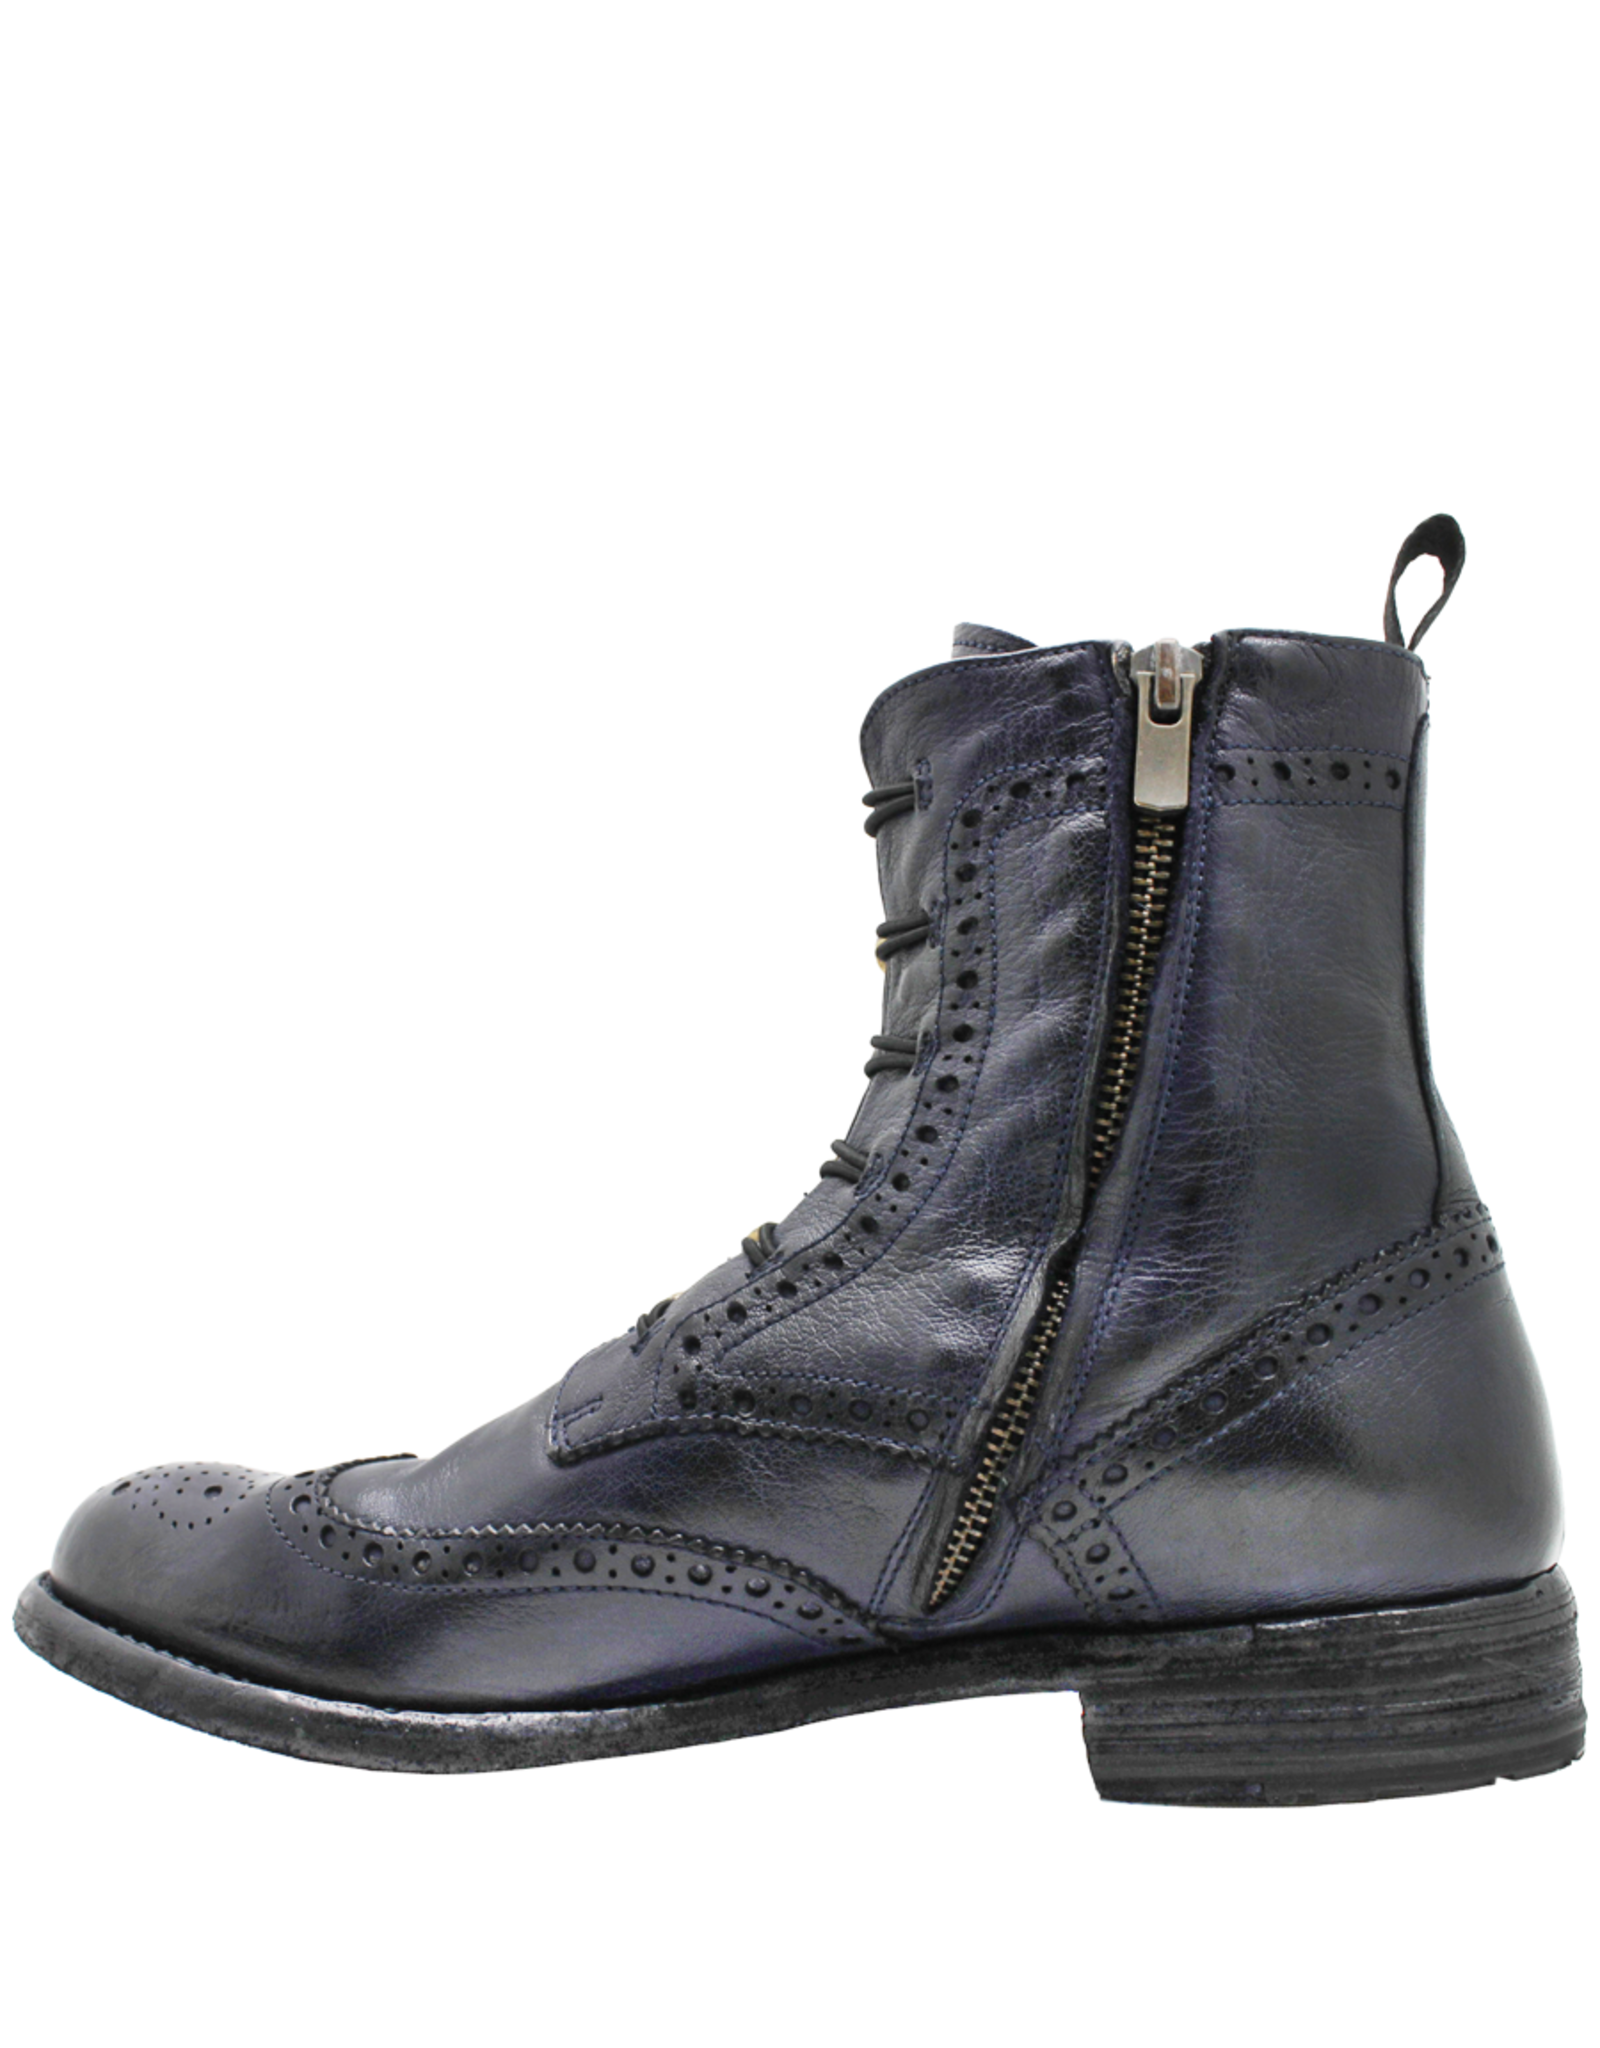 Officine Creative OfficineCreative Navy Ankle Boot / Toggle And Side Zipper Lexicon